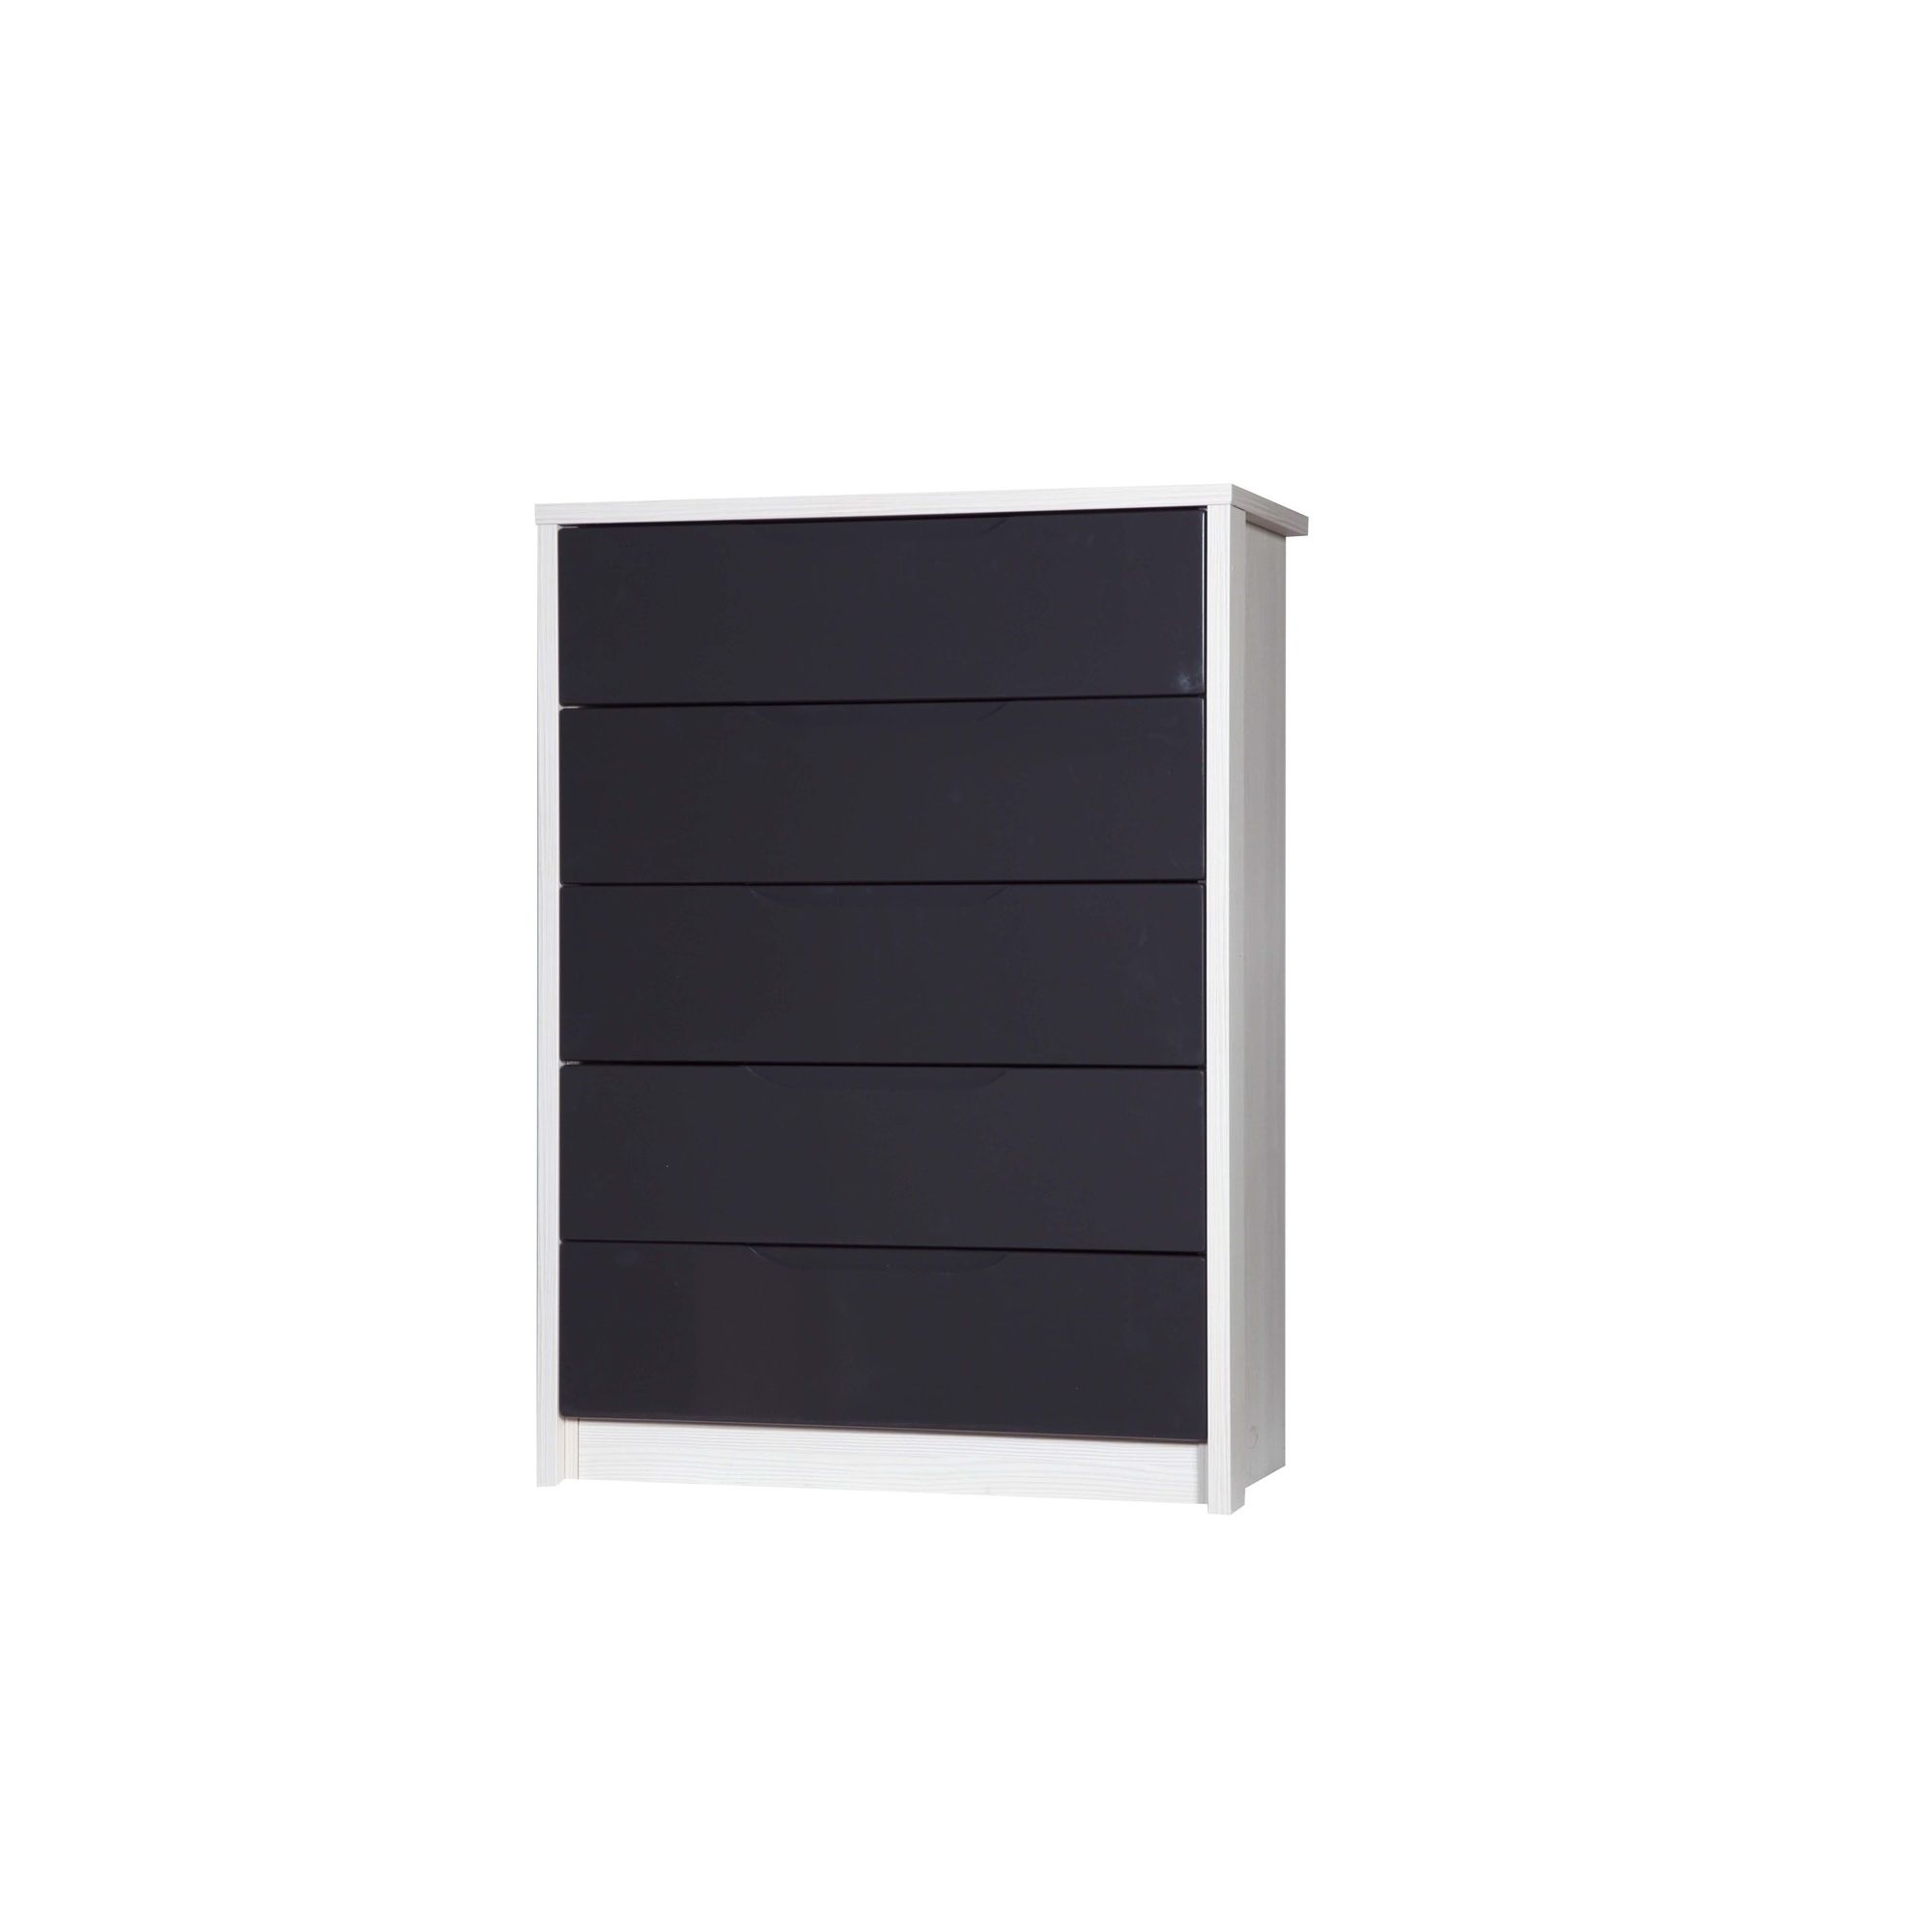 Alto Furniture Avola 5 Drawer Chest - White Avola Carcass With Grey Gloss at Tesco Direct